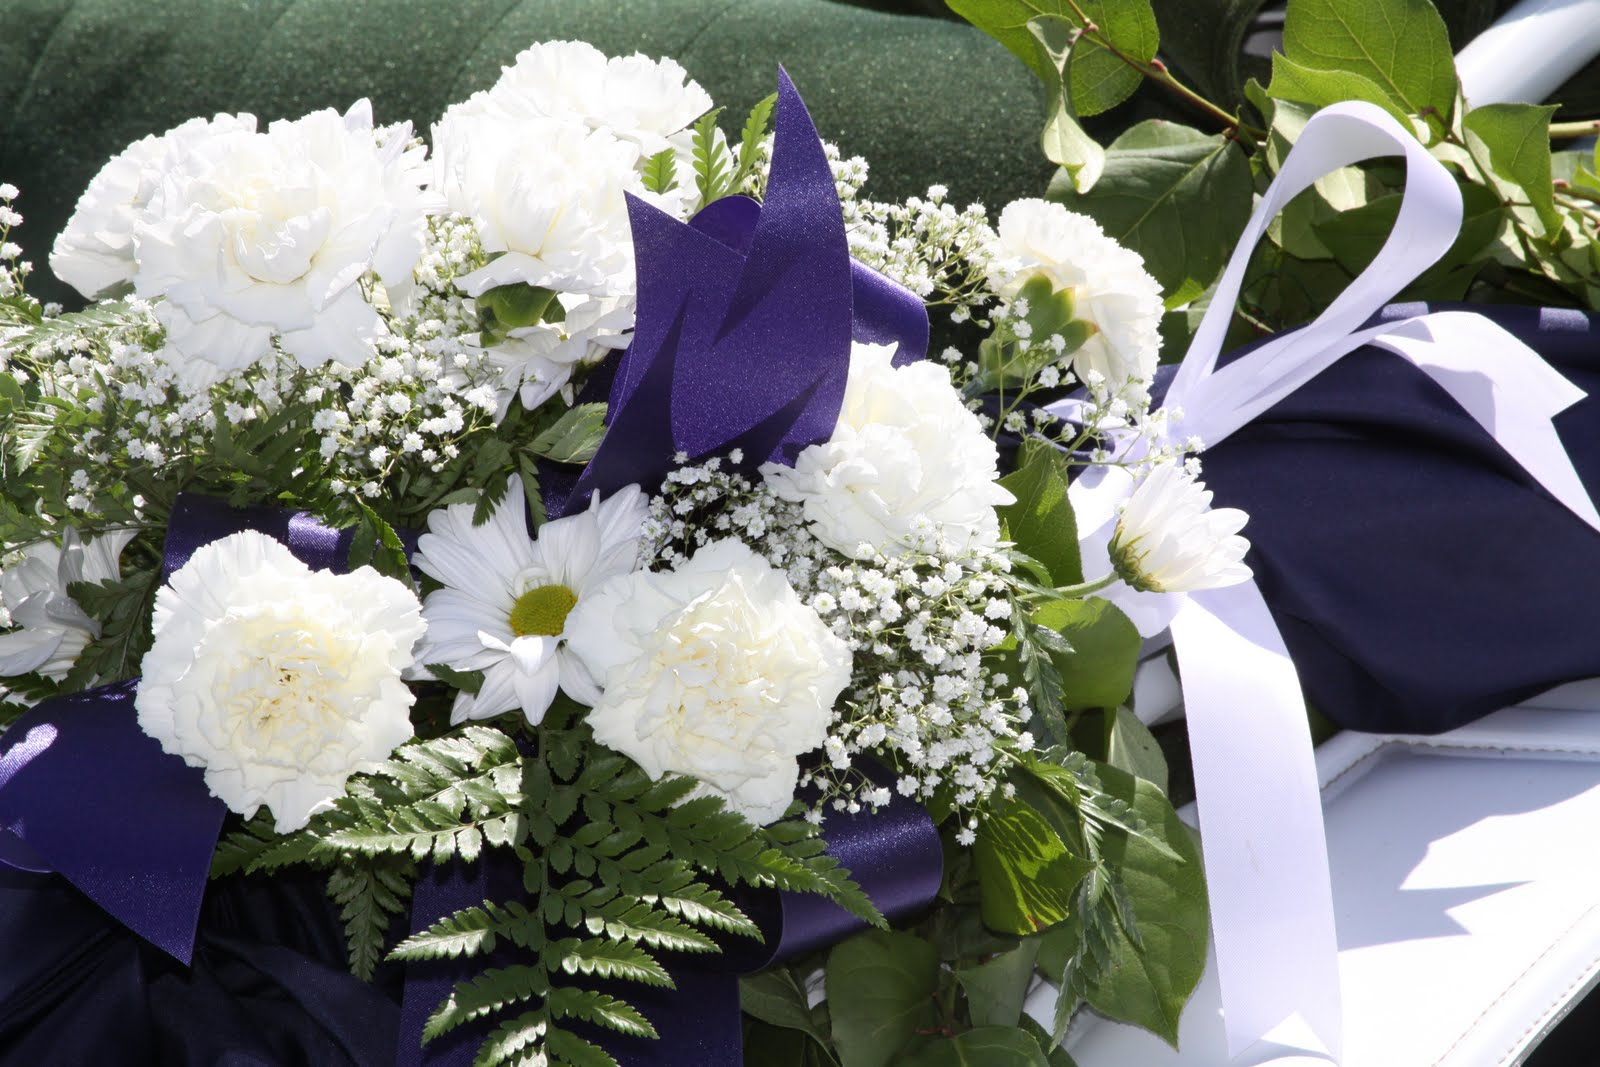 White Wedding Flowers July : Wildflowers wedding flowers july and august